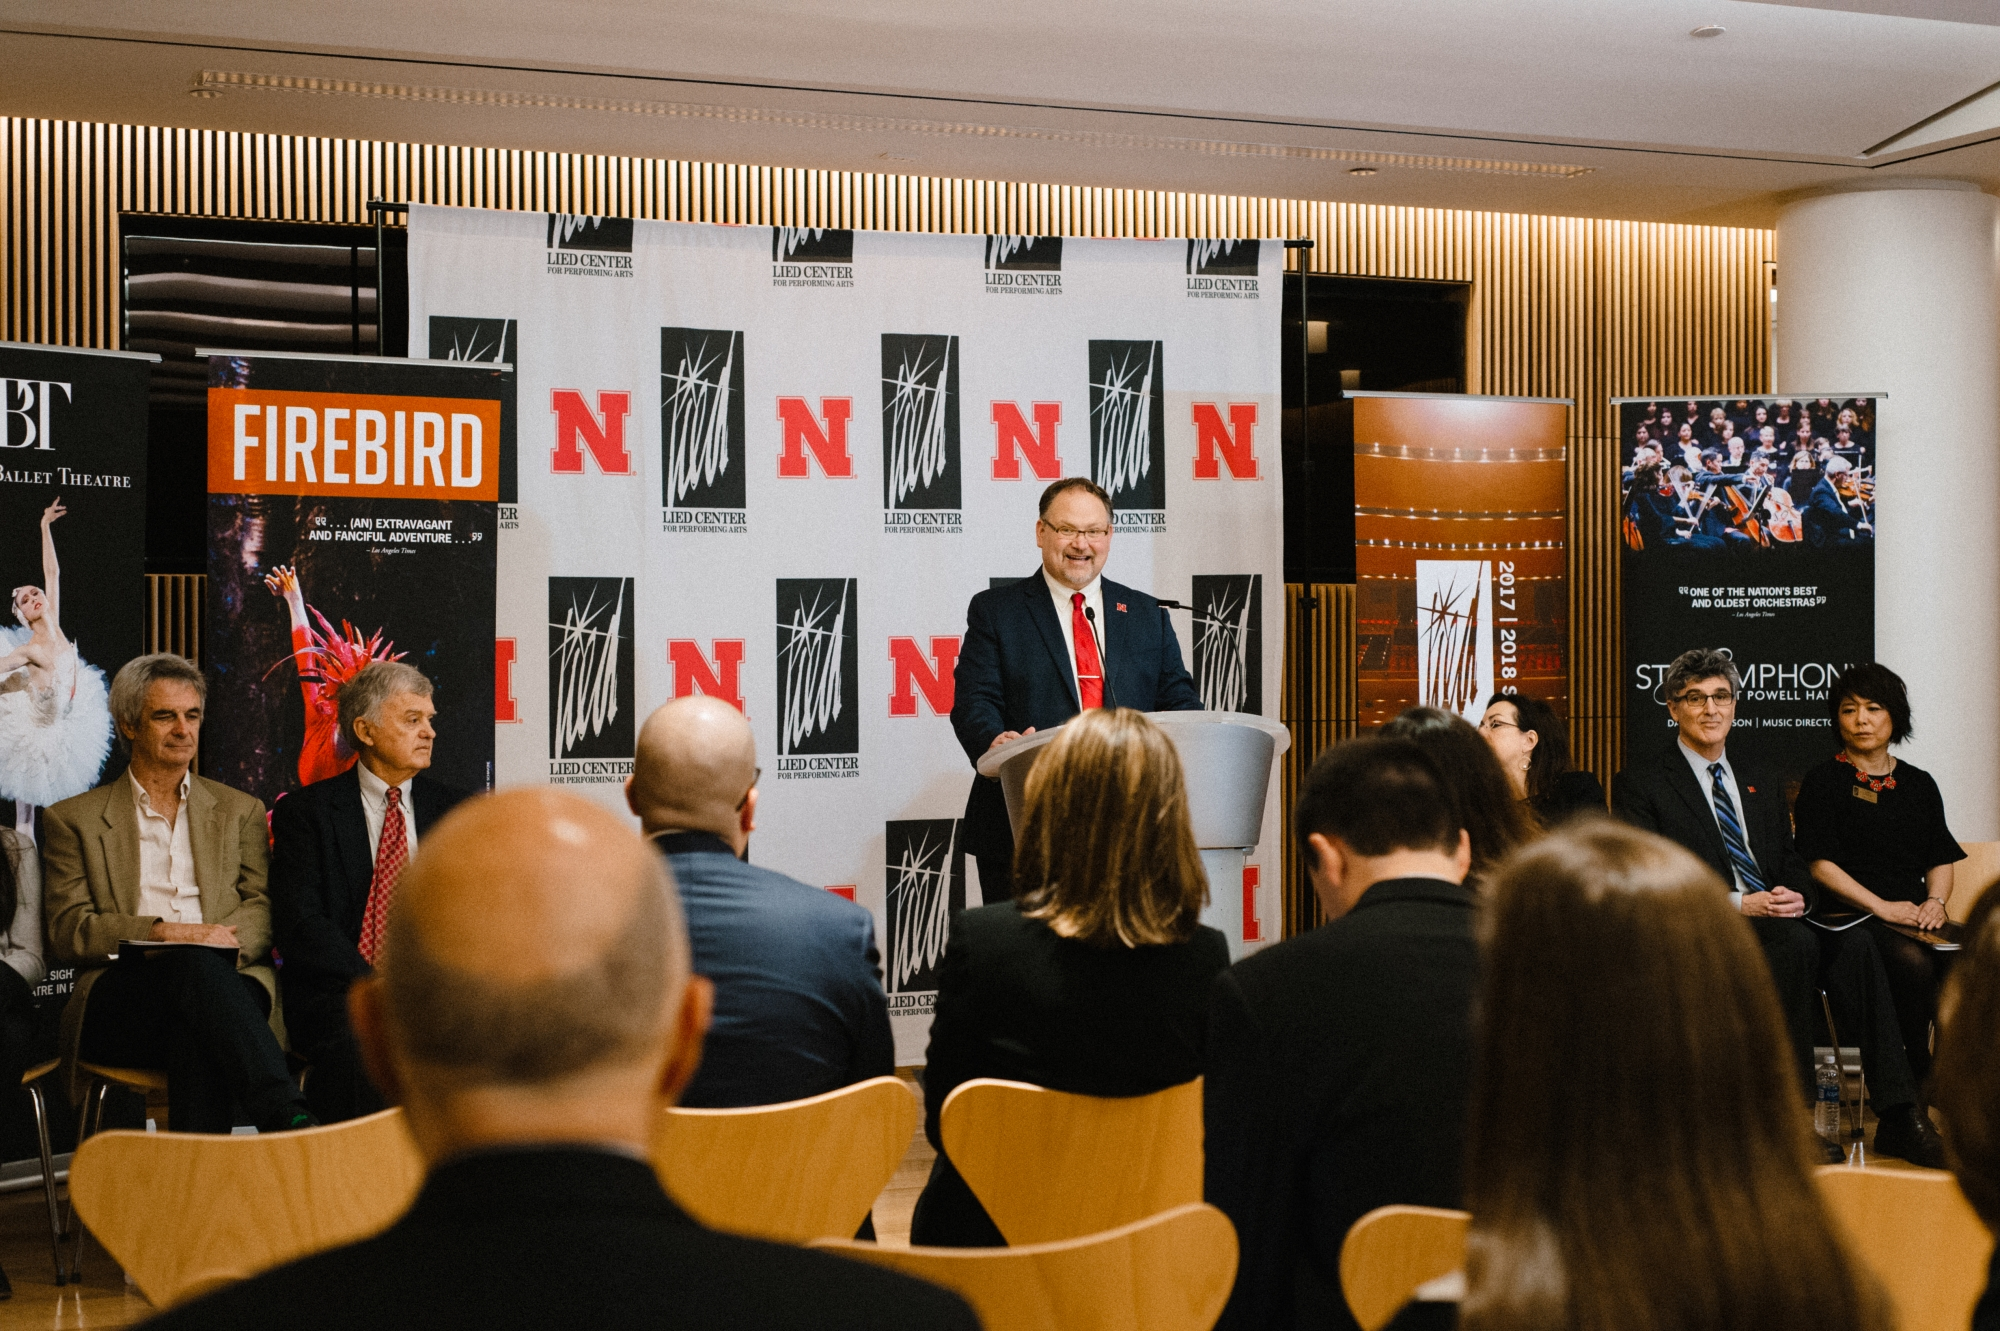 Image of the press conference announcing the Firebird performance showing Bill Stephan at the podium in front of the Lied Center and University of Nebraska backdrop